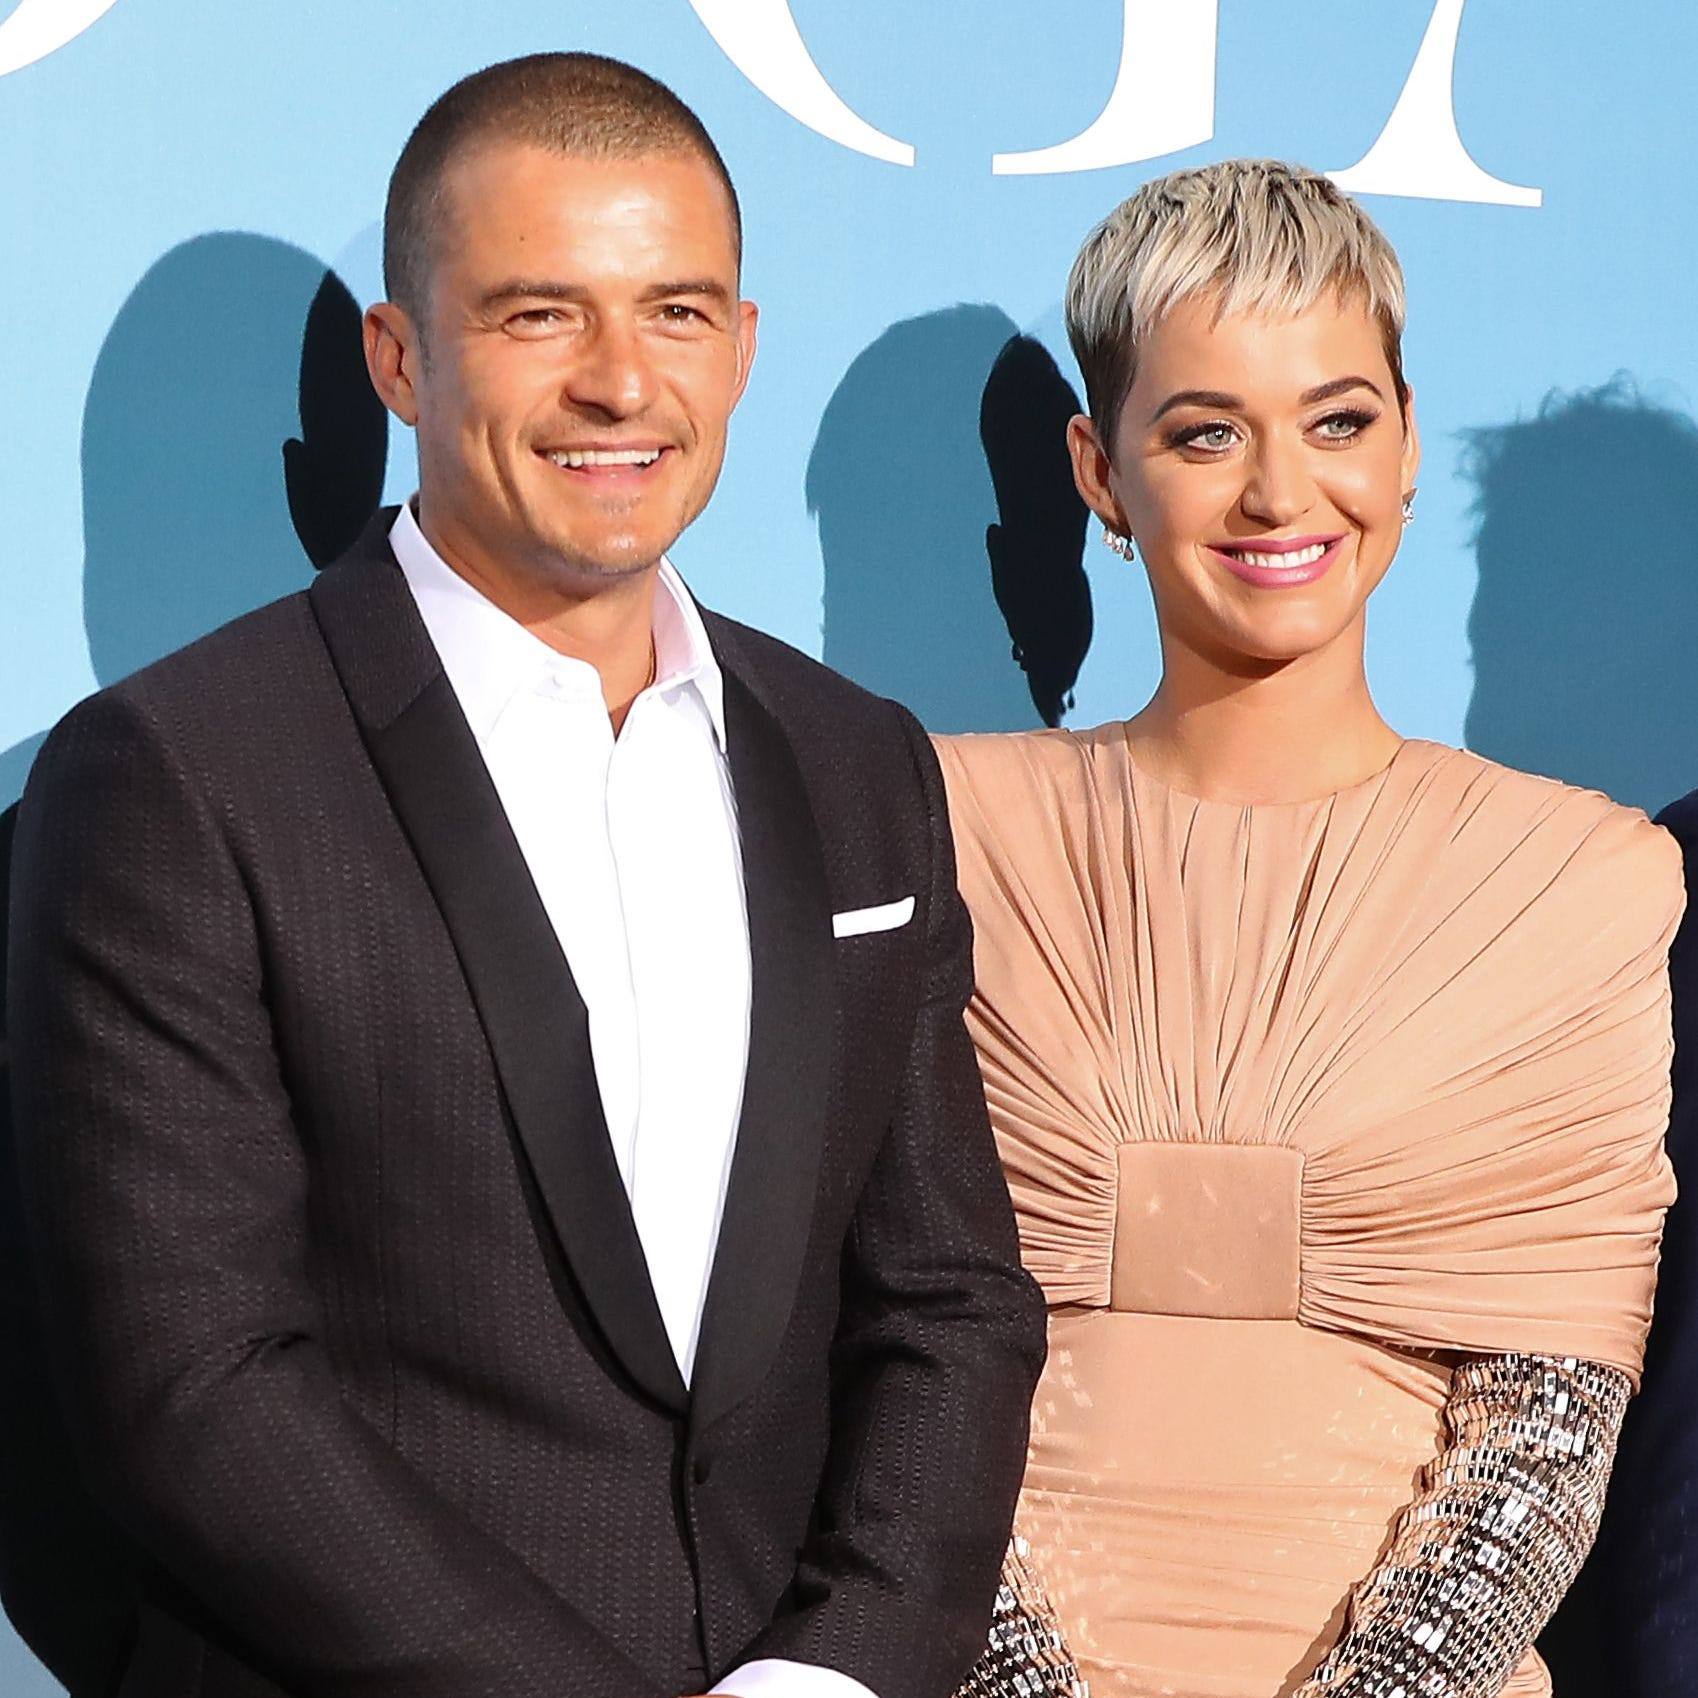 Orlando Bloom and Katy Perry pose upon their arrival at the 2nd Monte-Carlo Gala for the Global Ocean 2018 held in Monaco on Sept. 26.